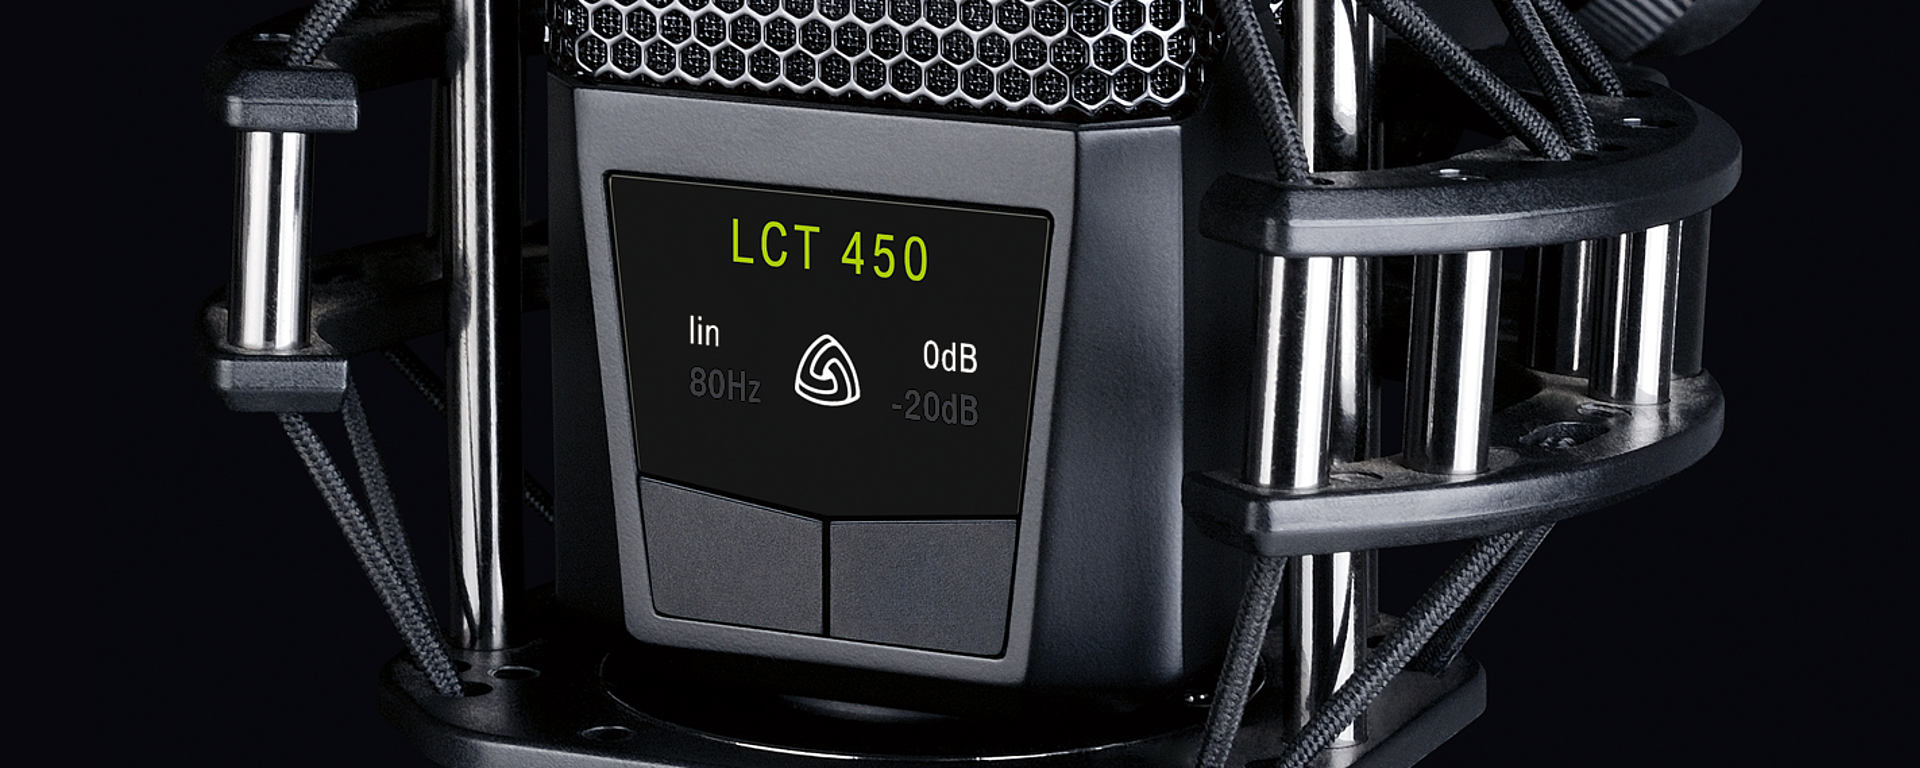 LCT 450 illuminated user interface